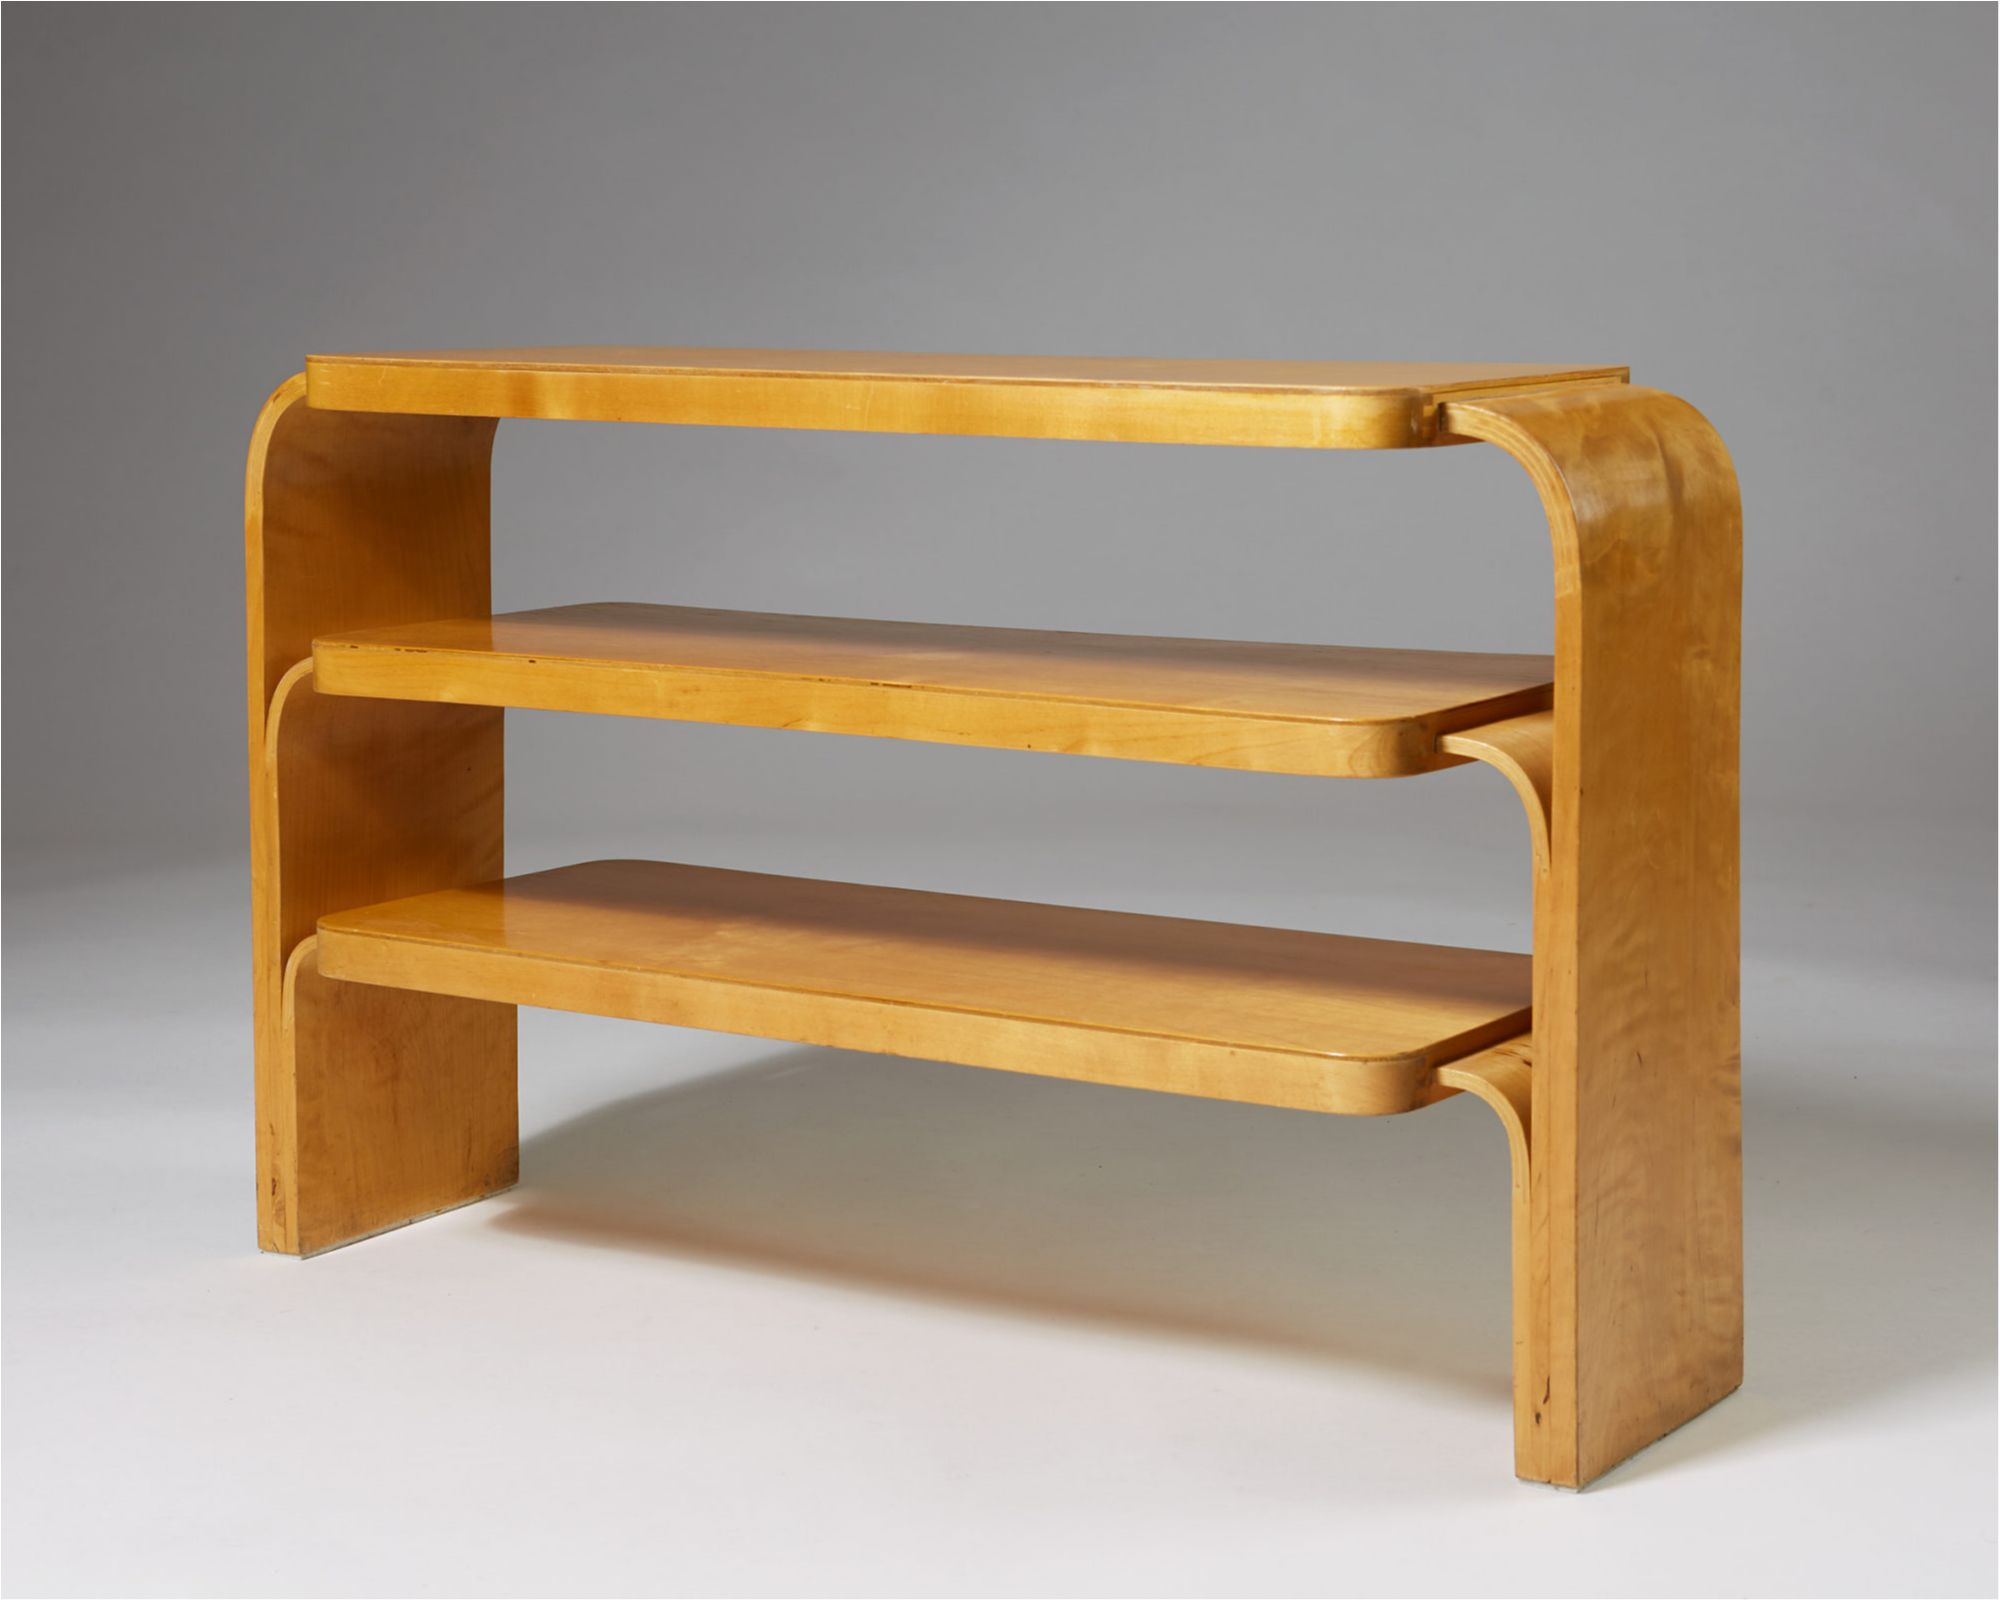 Rare Art Deco Shelf By Alvar Aalto For Hedemora Sweden 1933